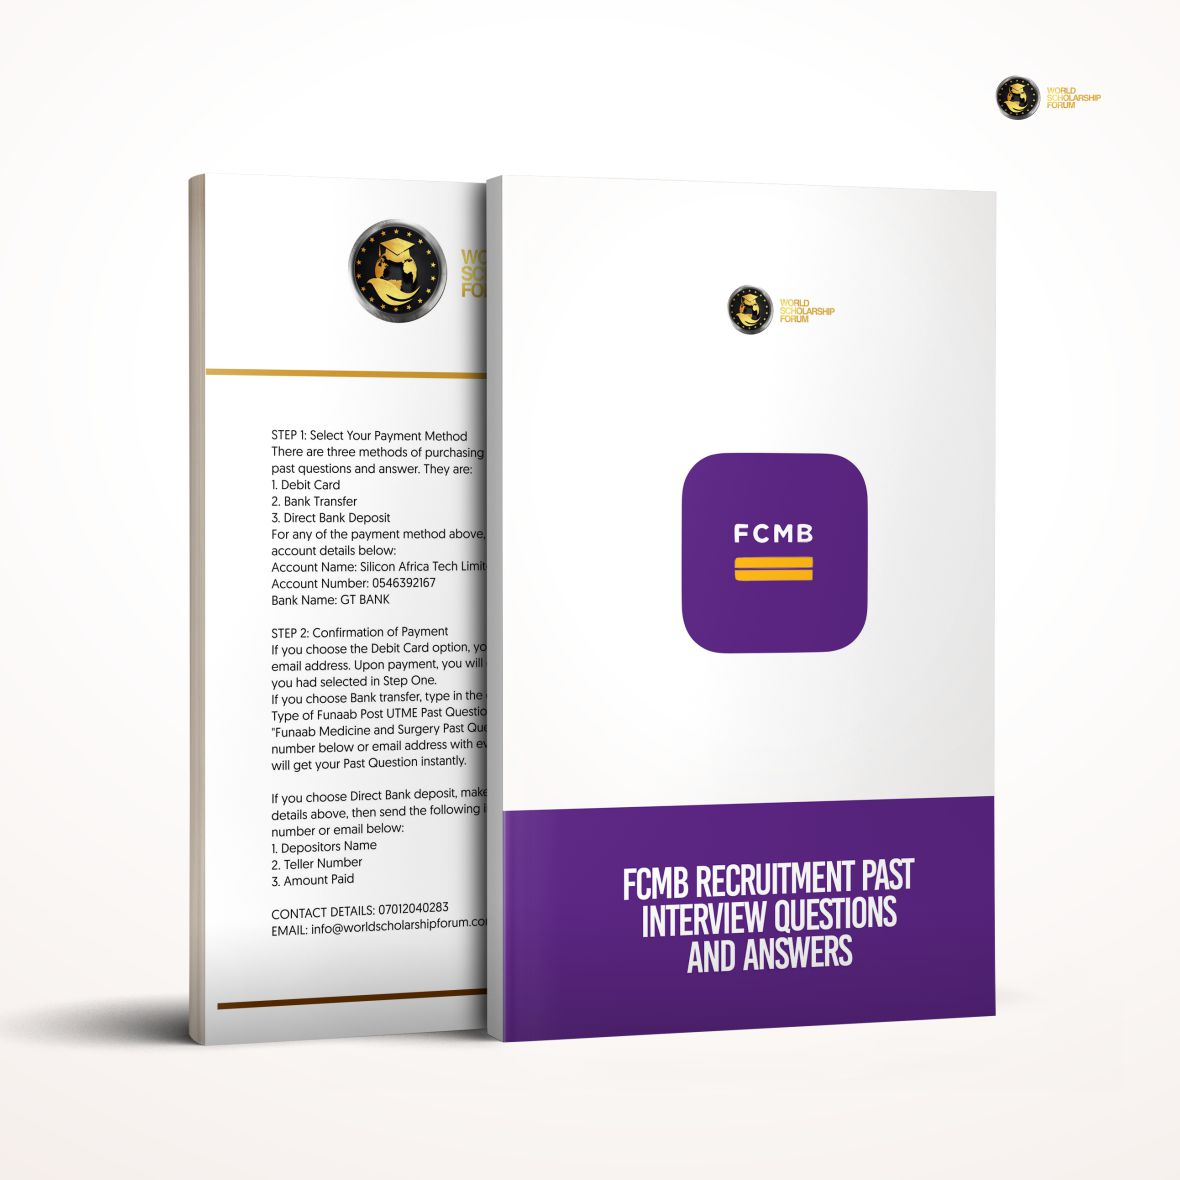 fcmb-recruitment-past-questions-answers